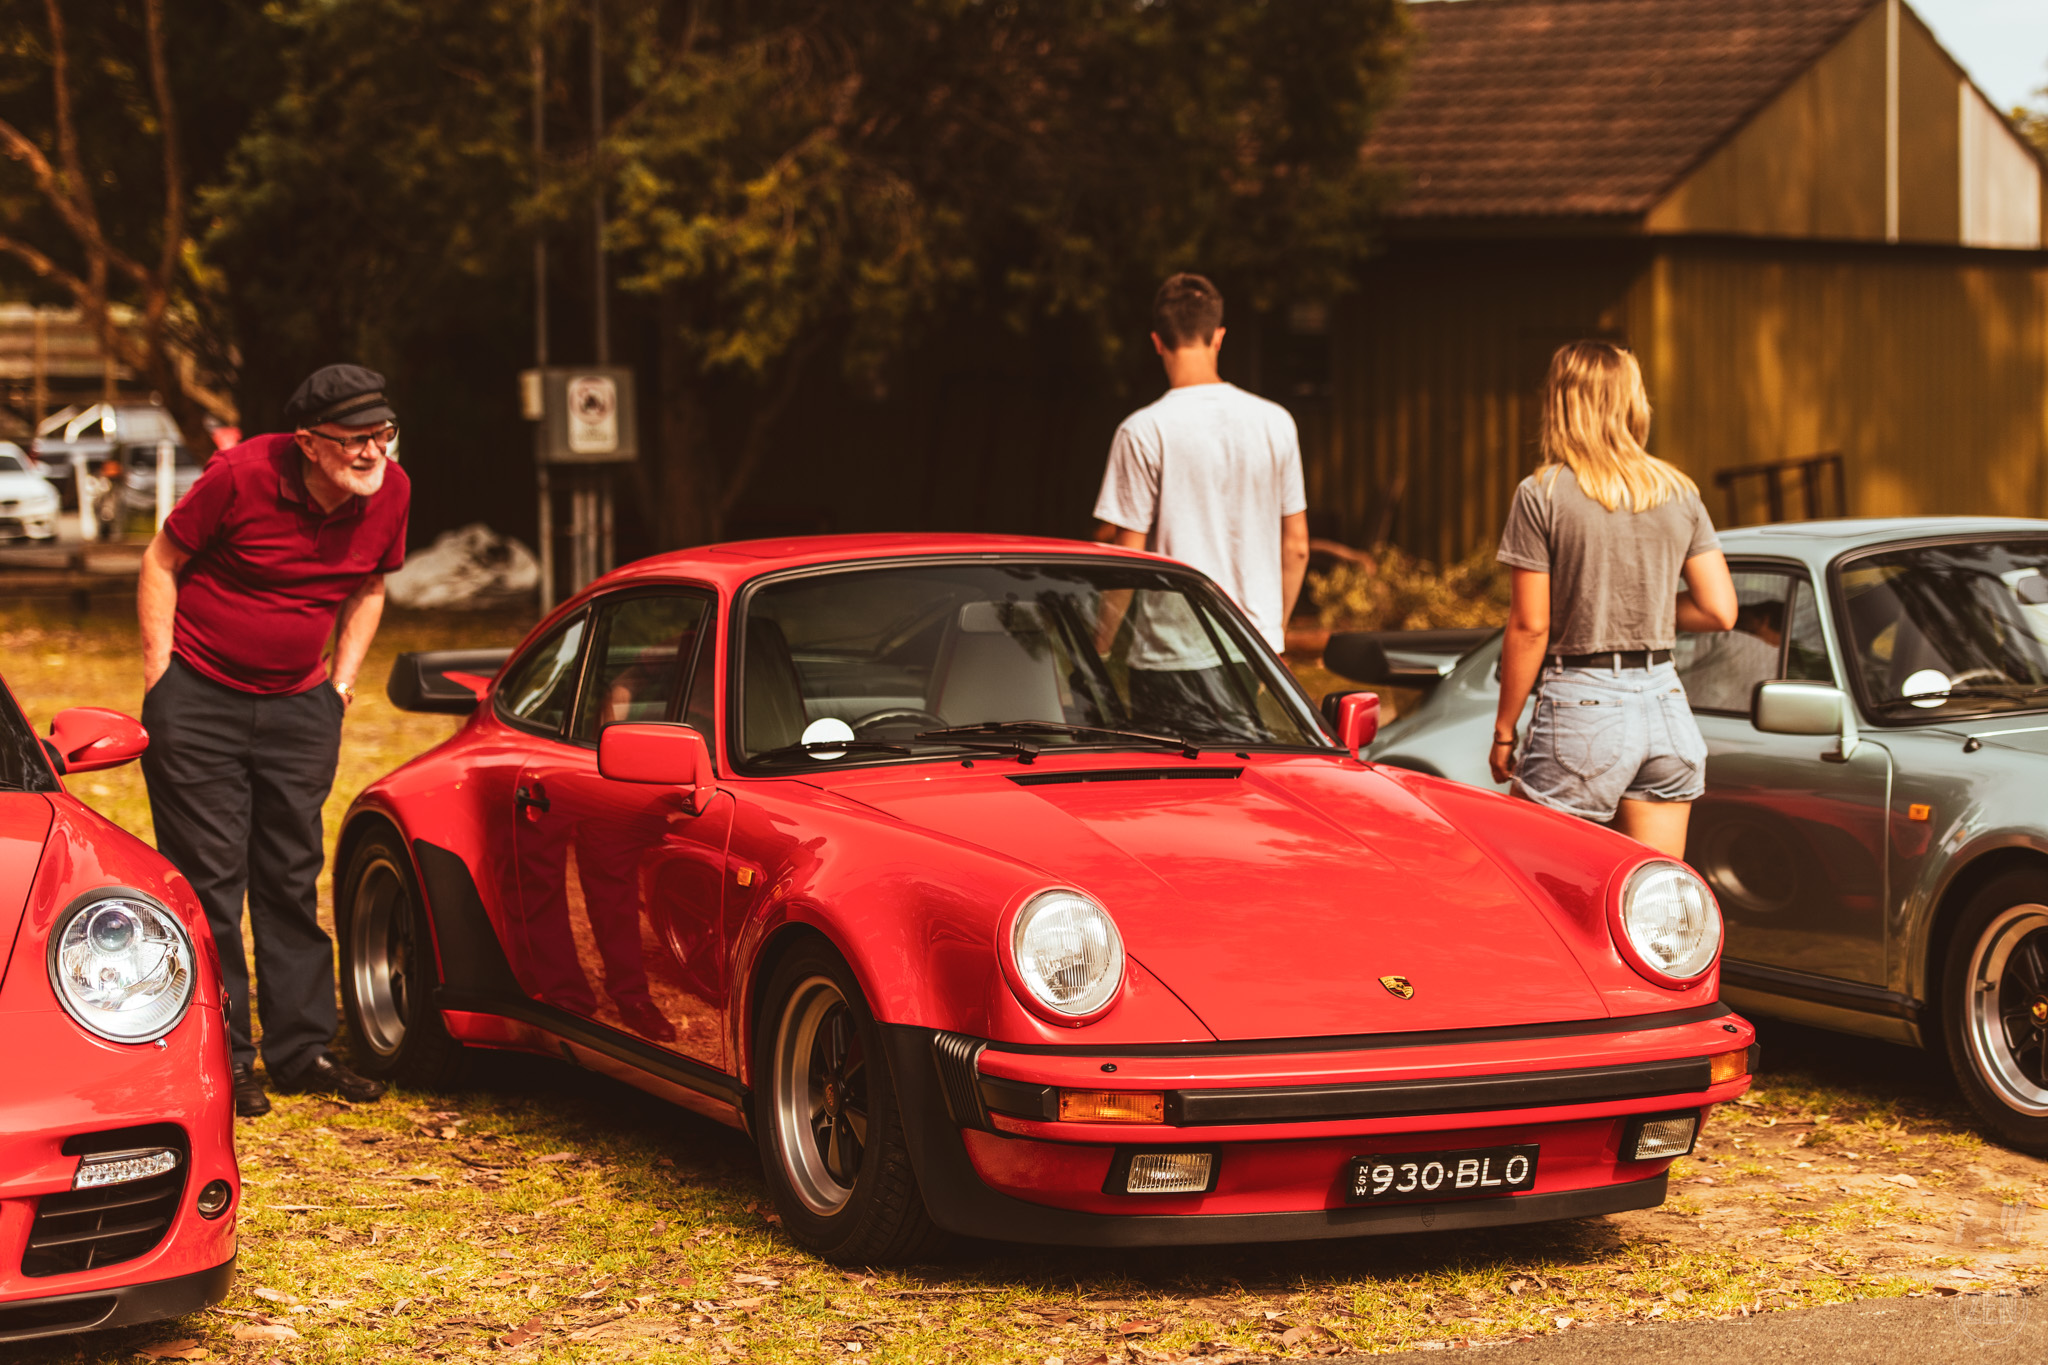 2019-12-08 - Porsches & Coffee 131